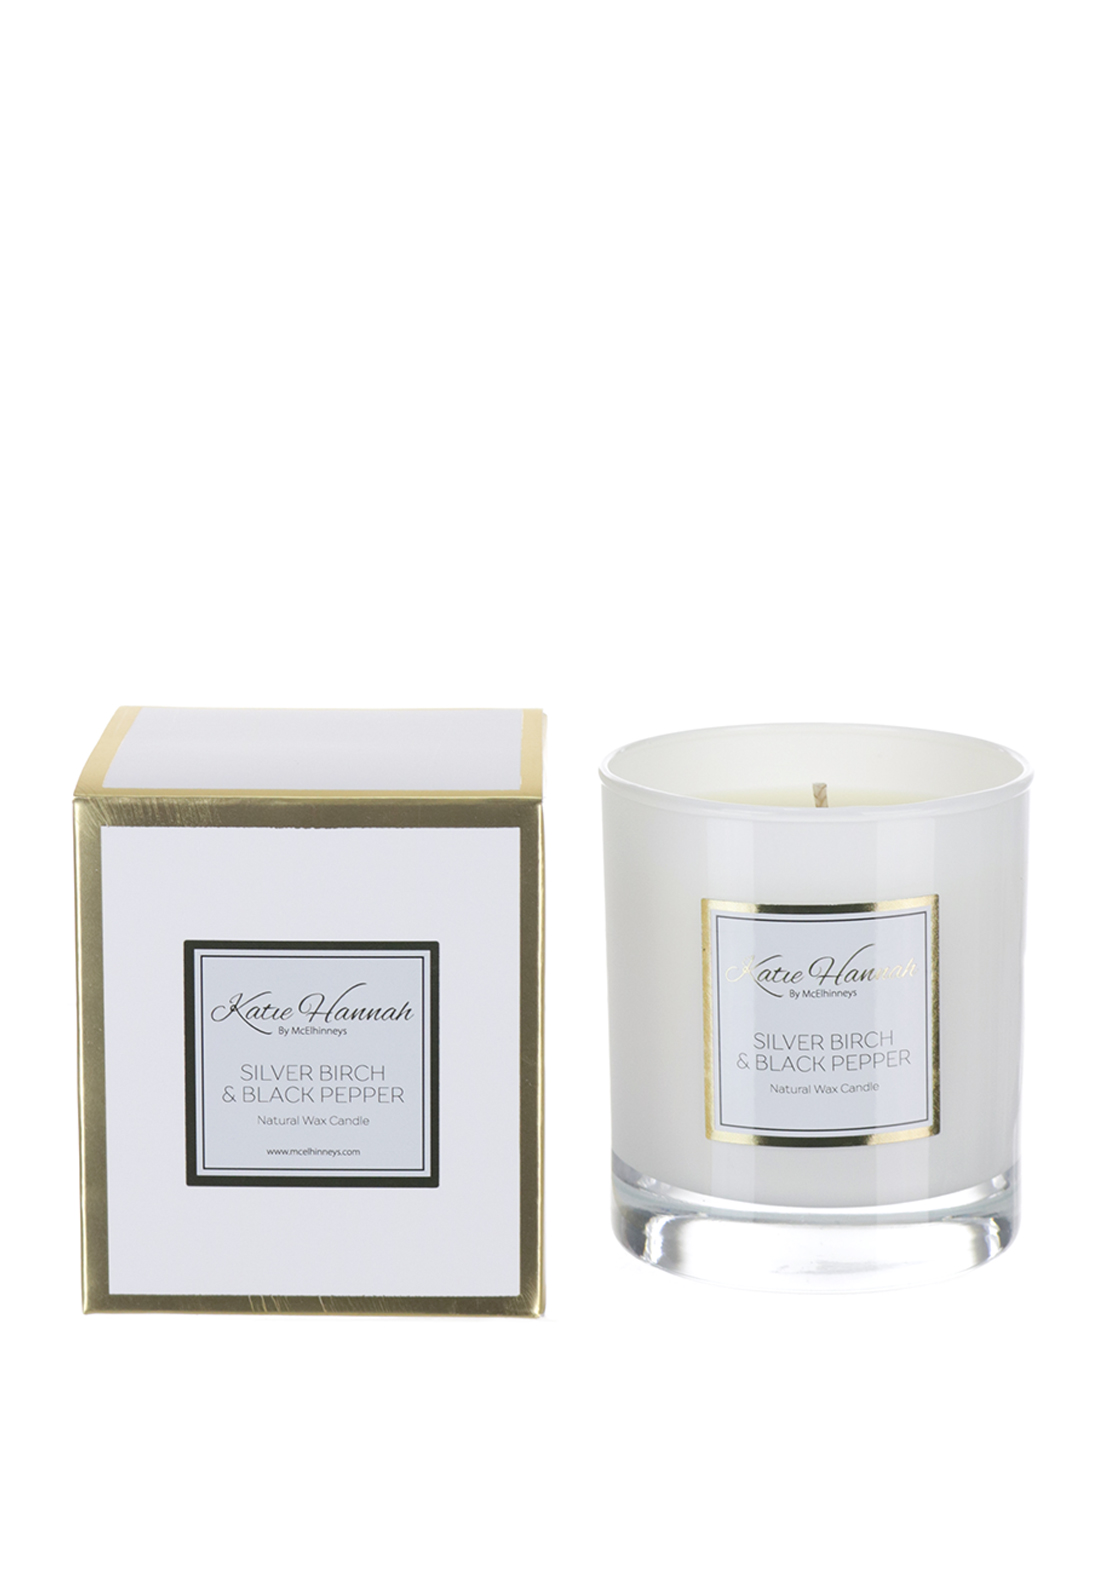 Katie Hannah By McElhinneys Silver Birch & Black Pepper Natural Wax Candle